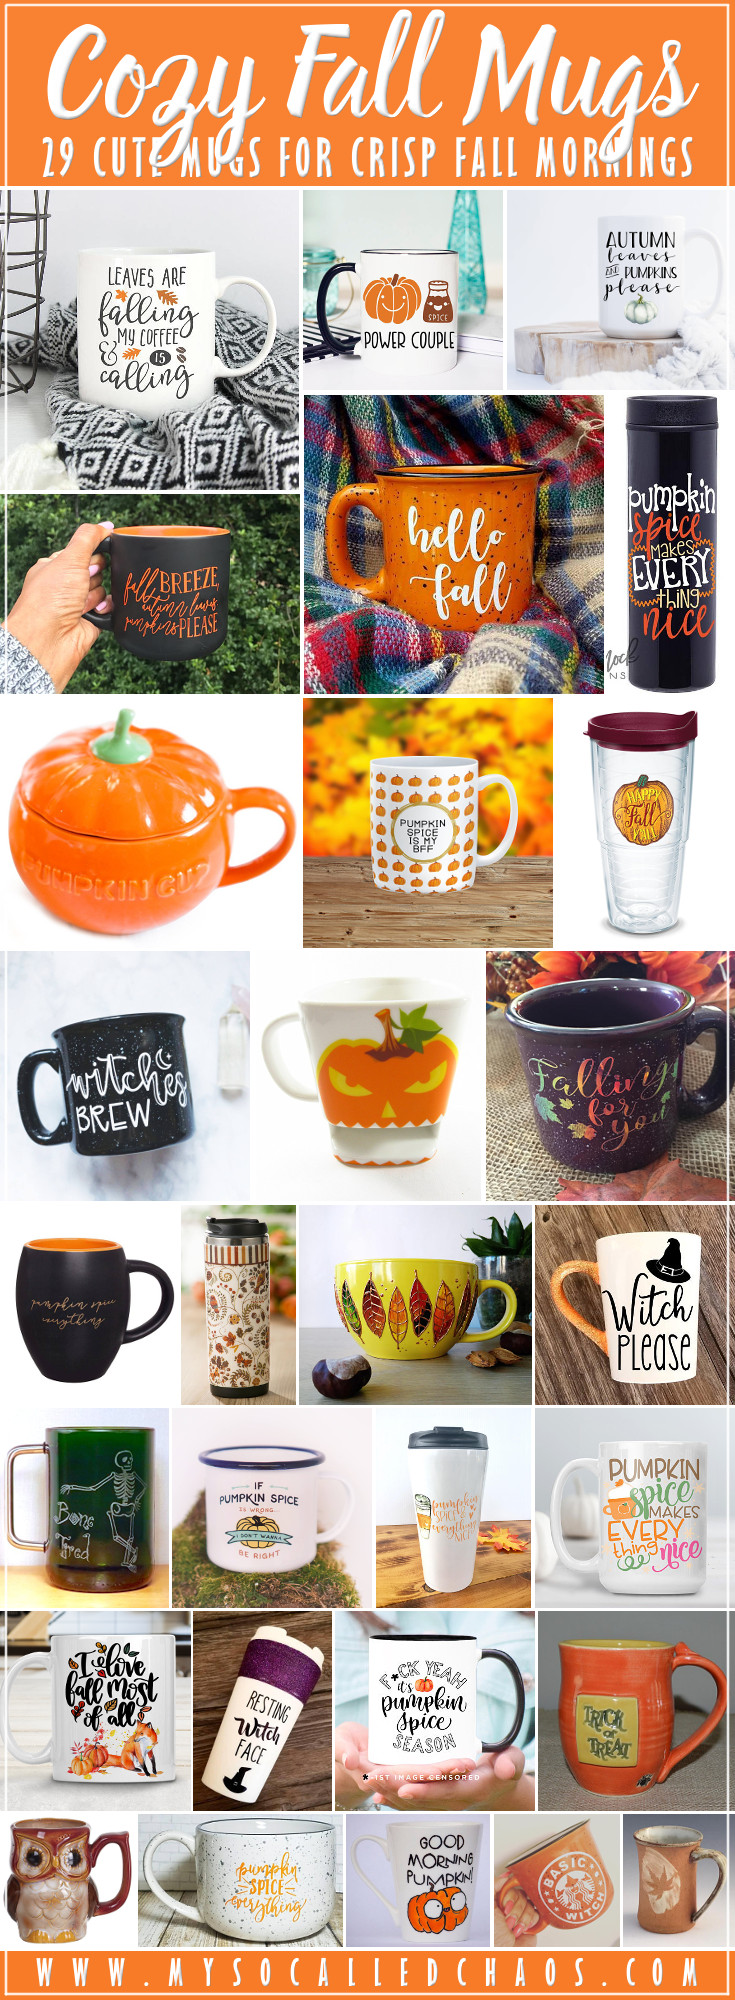 29 Cozy Fall Mugs You Love Using on Crisp Mornings